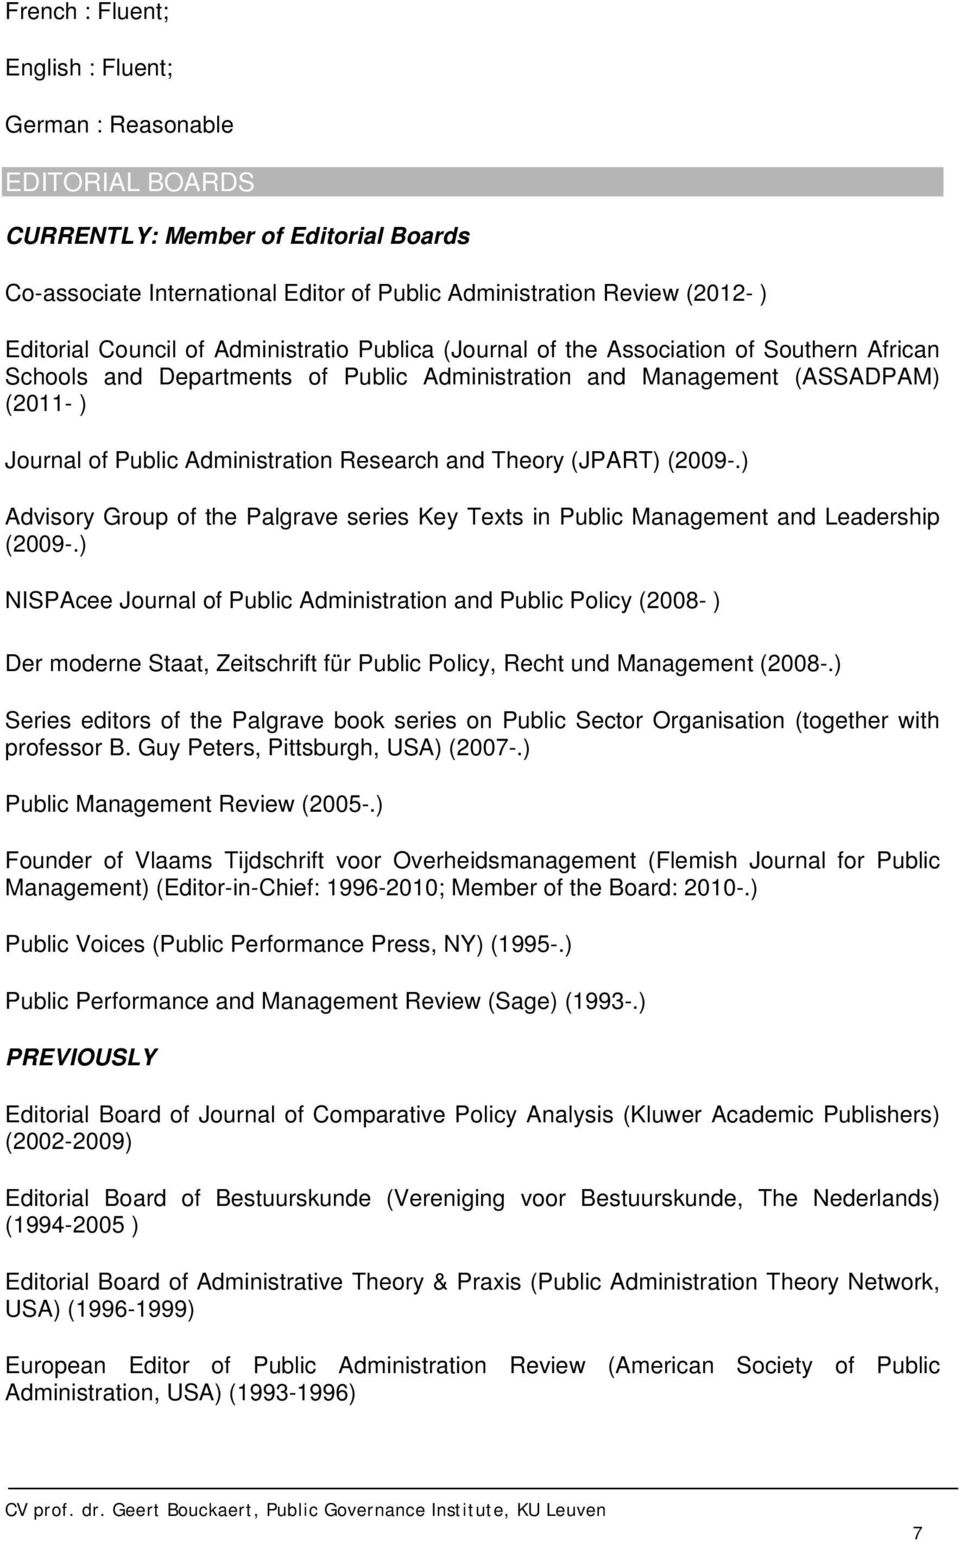 Research and Theory (JPART) (2009-.) Advisory Group of the Palgrave series Key Texts in Public Management and Leadership (2009-.